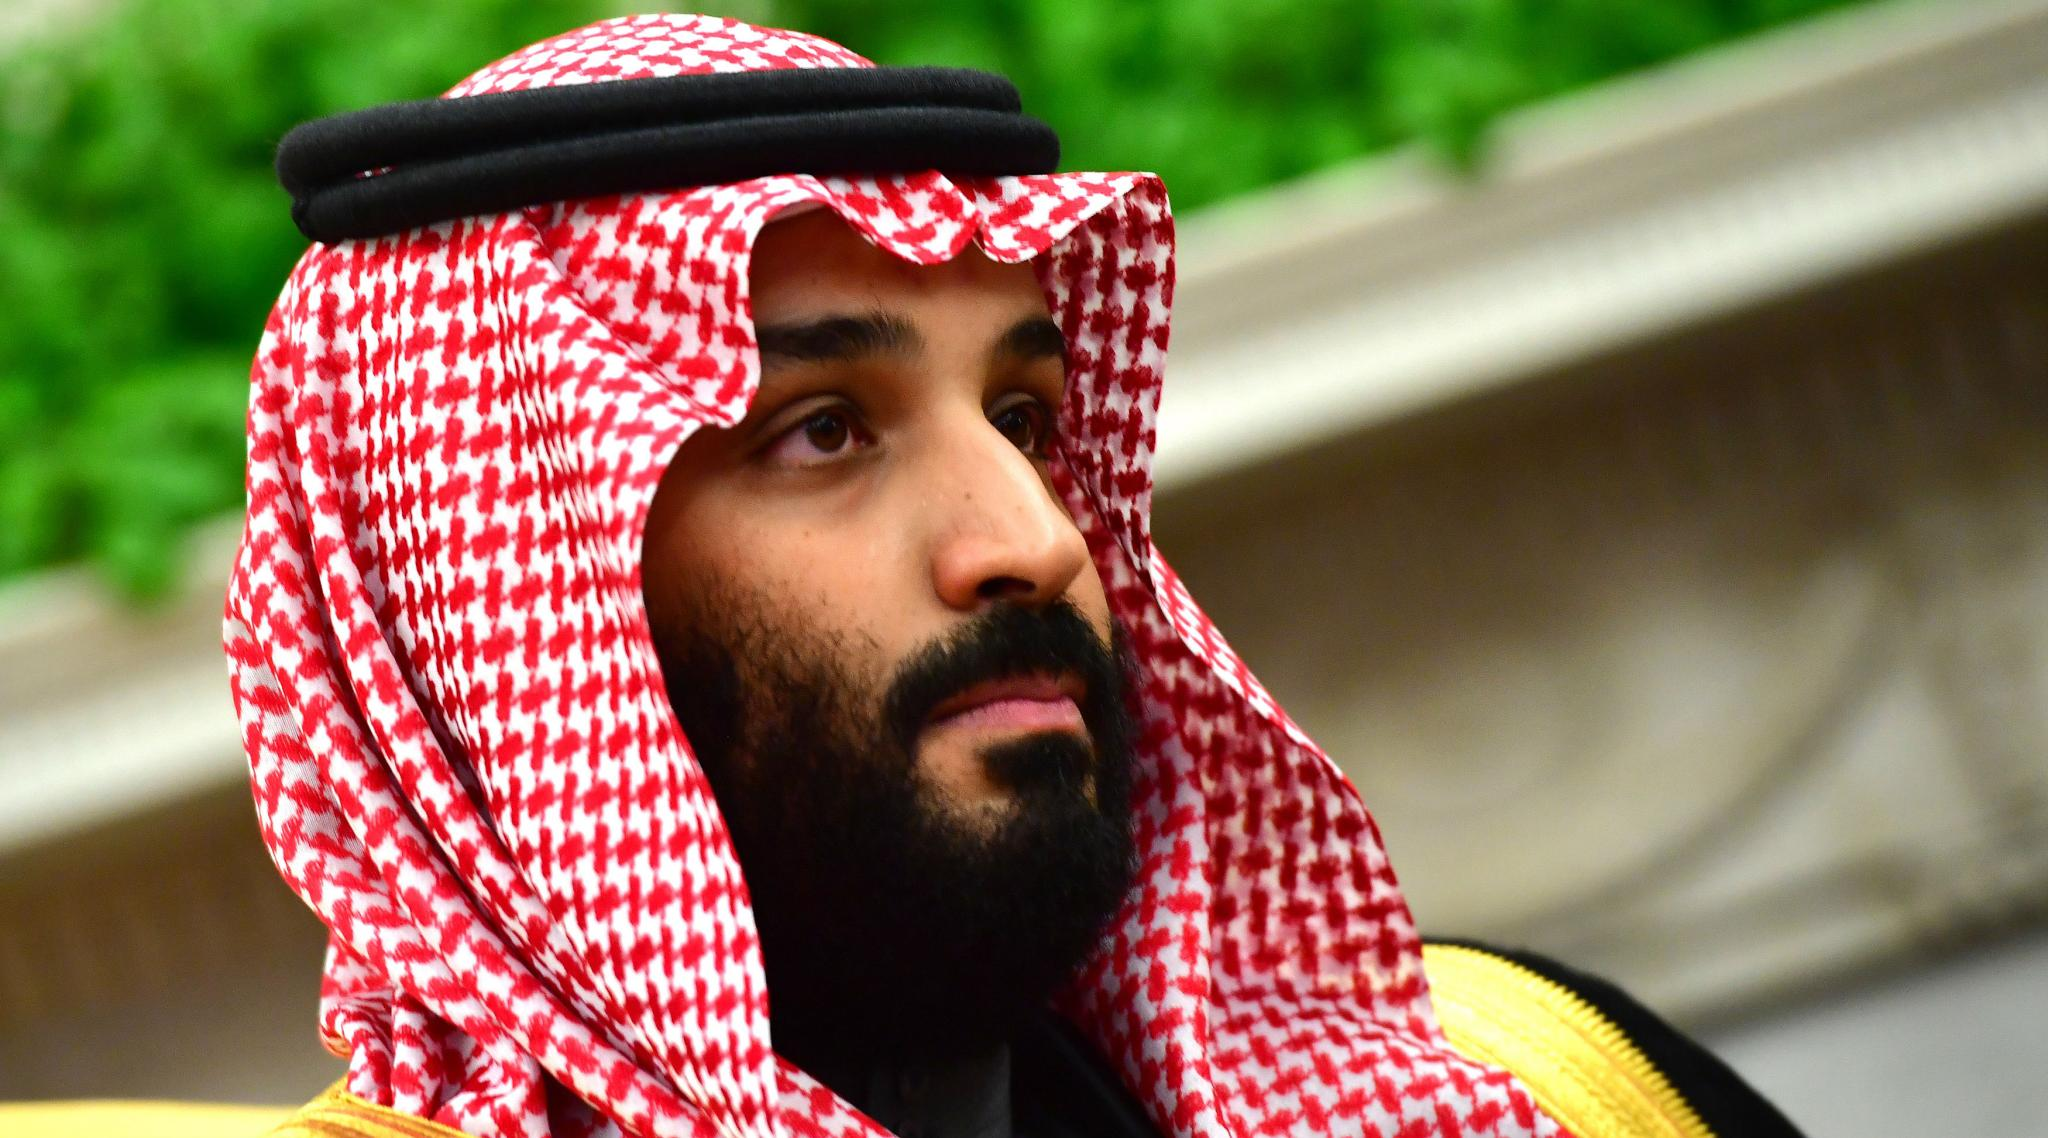 War with Iran Could Collapse Global Economy, Says Saudi Crown Prince Mohammed bin Salman